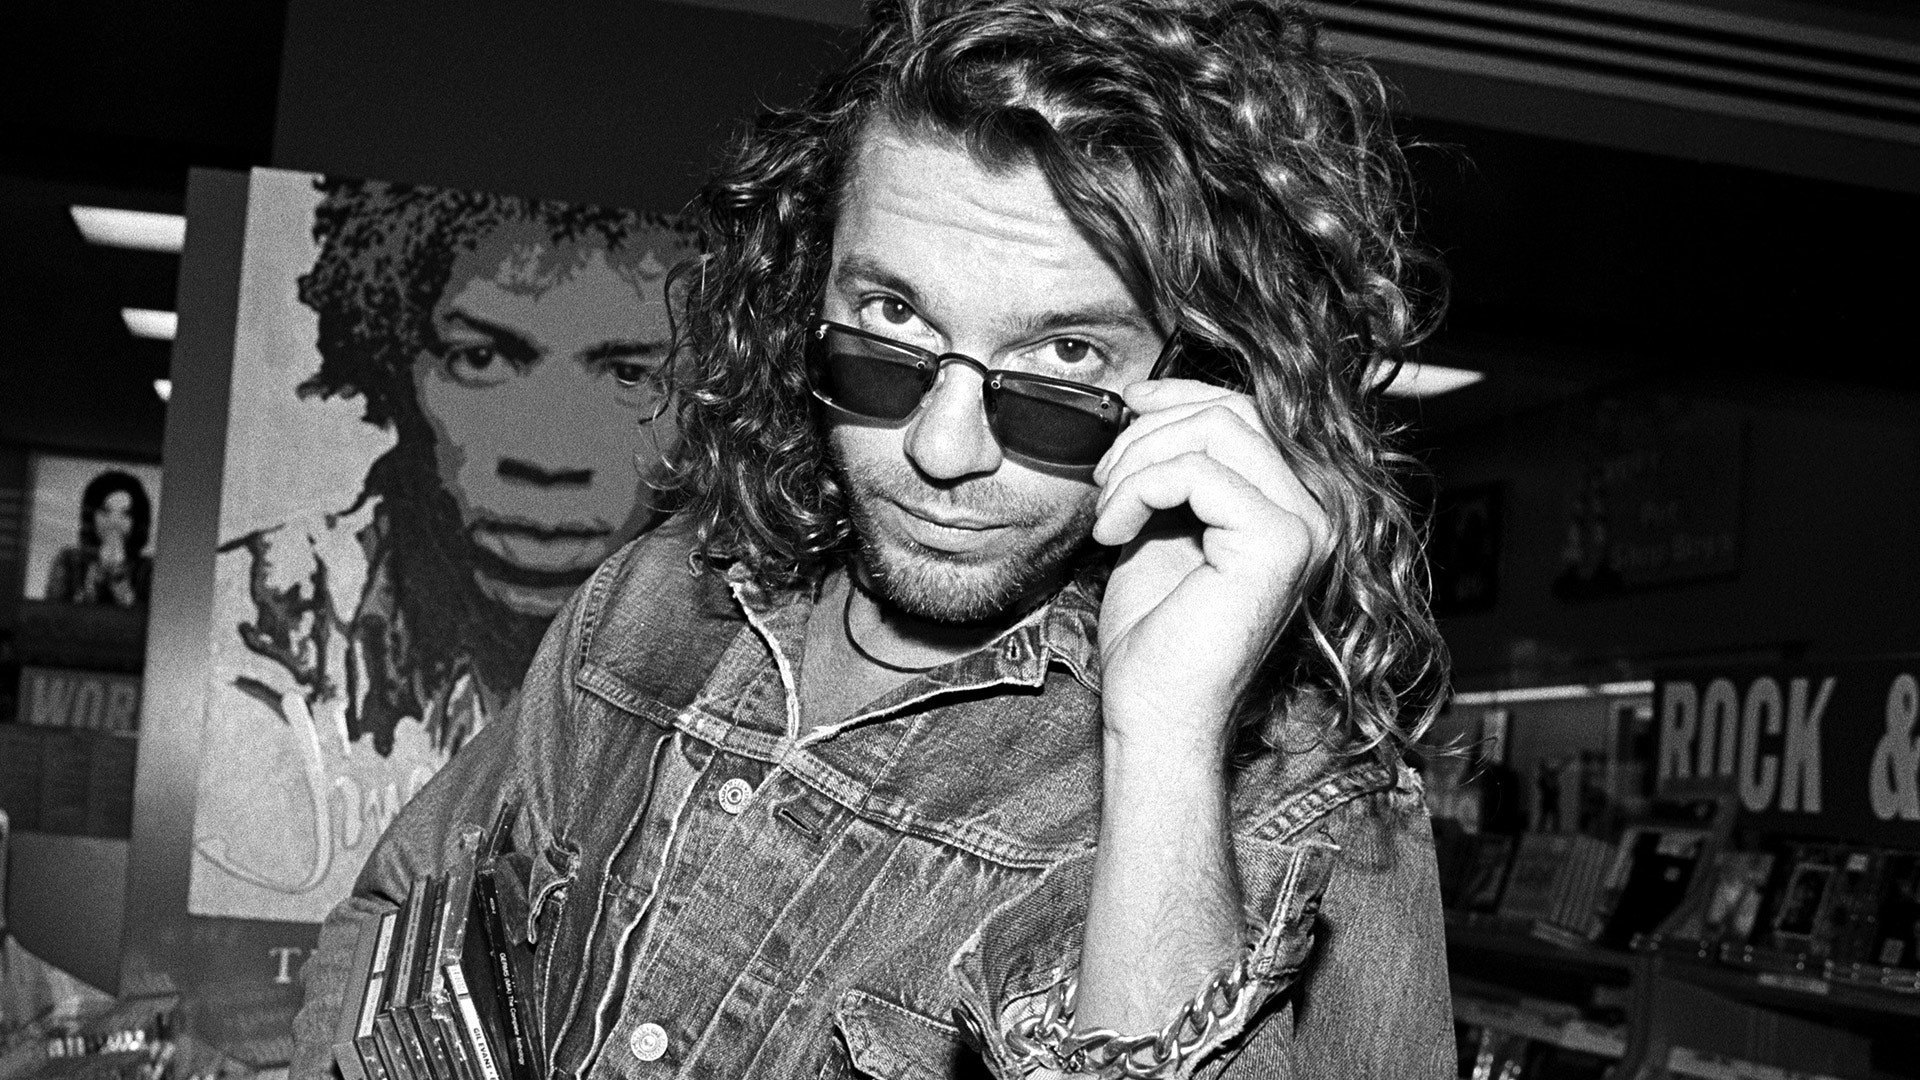 Auto michael asphyxiation erotic hutchence